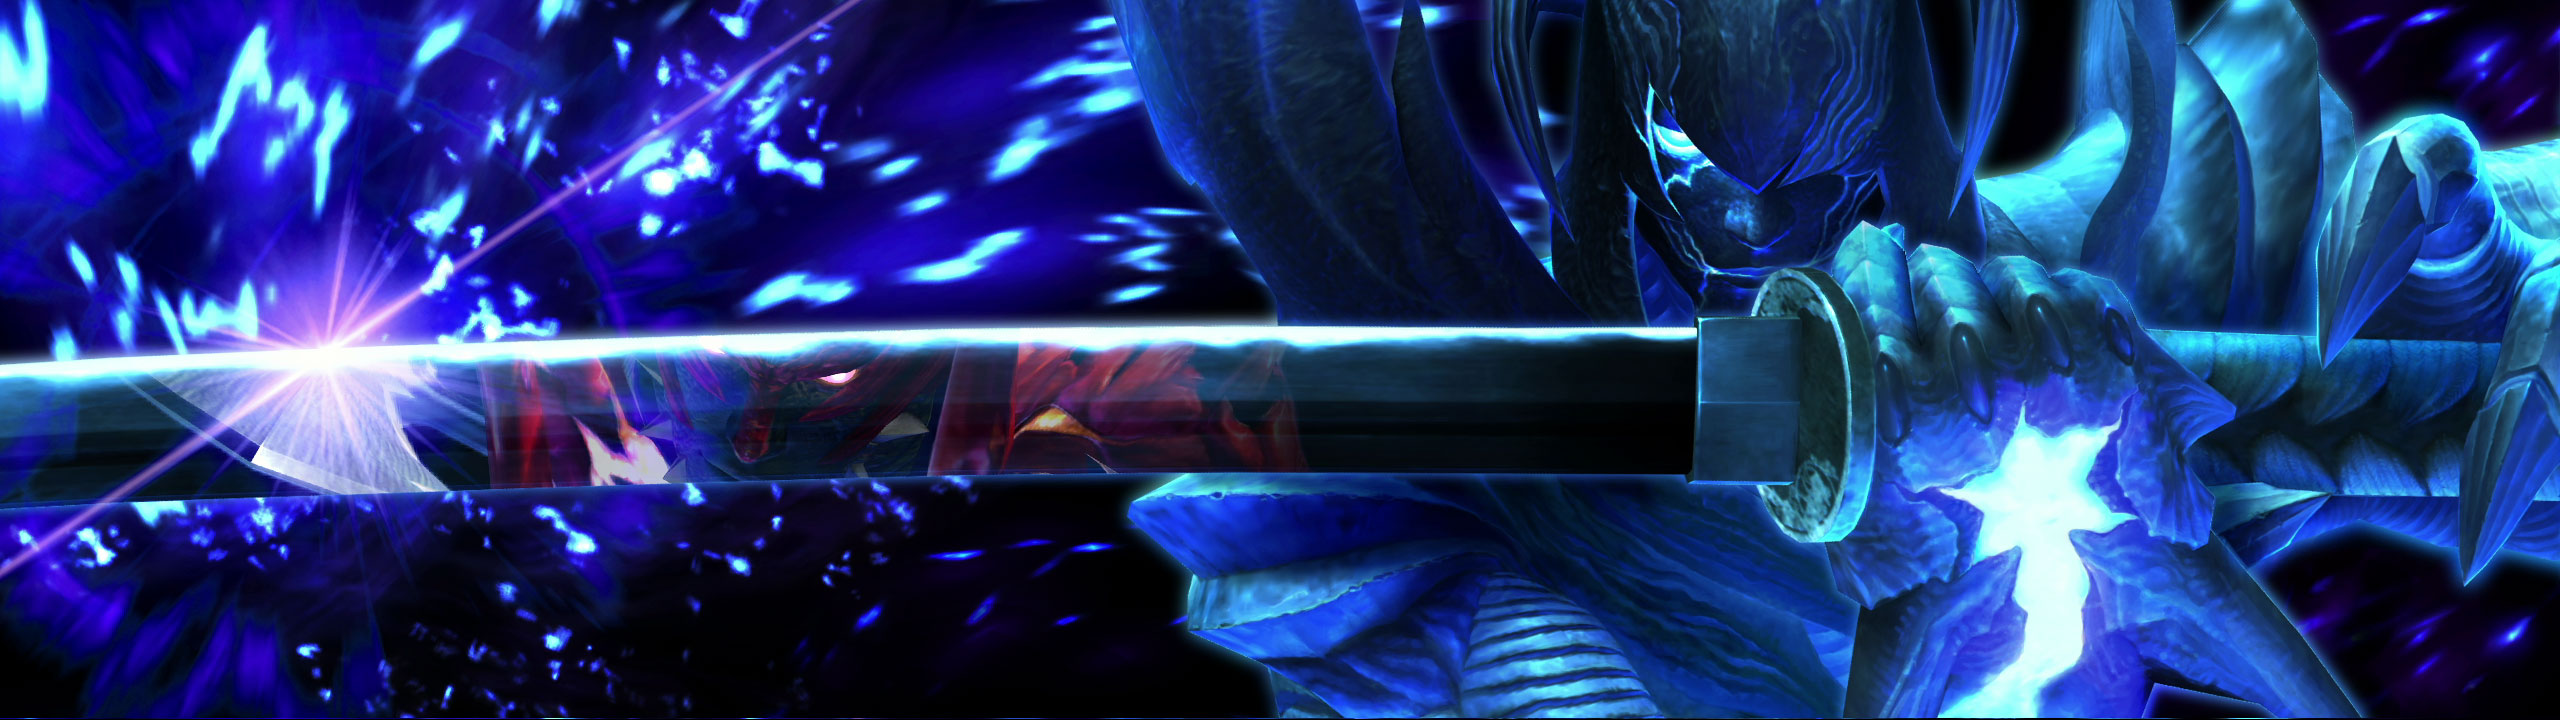 Devil May Cry Images Dmc4 Devil Trigger Hd Wallpaper And Background